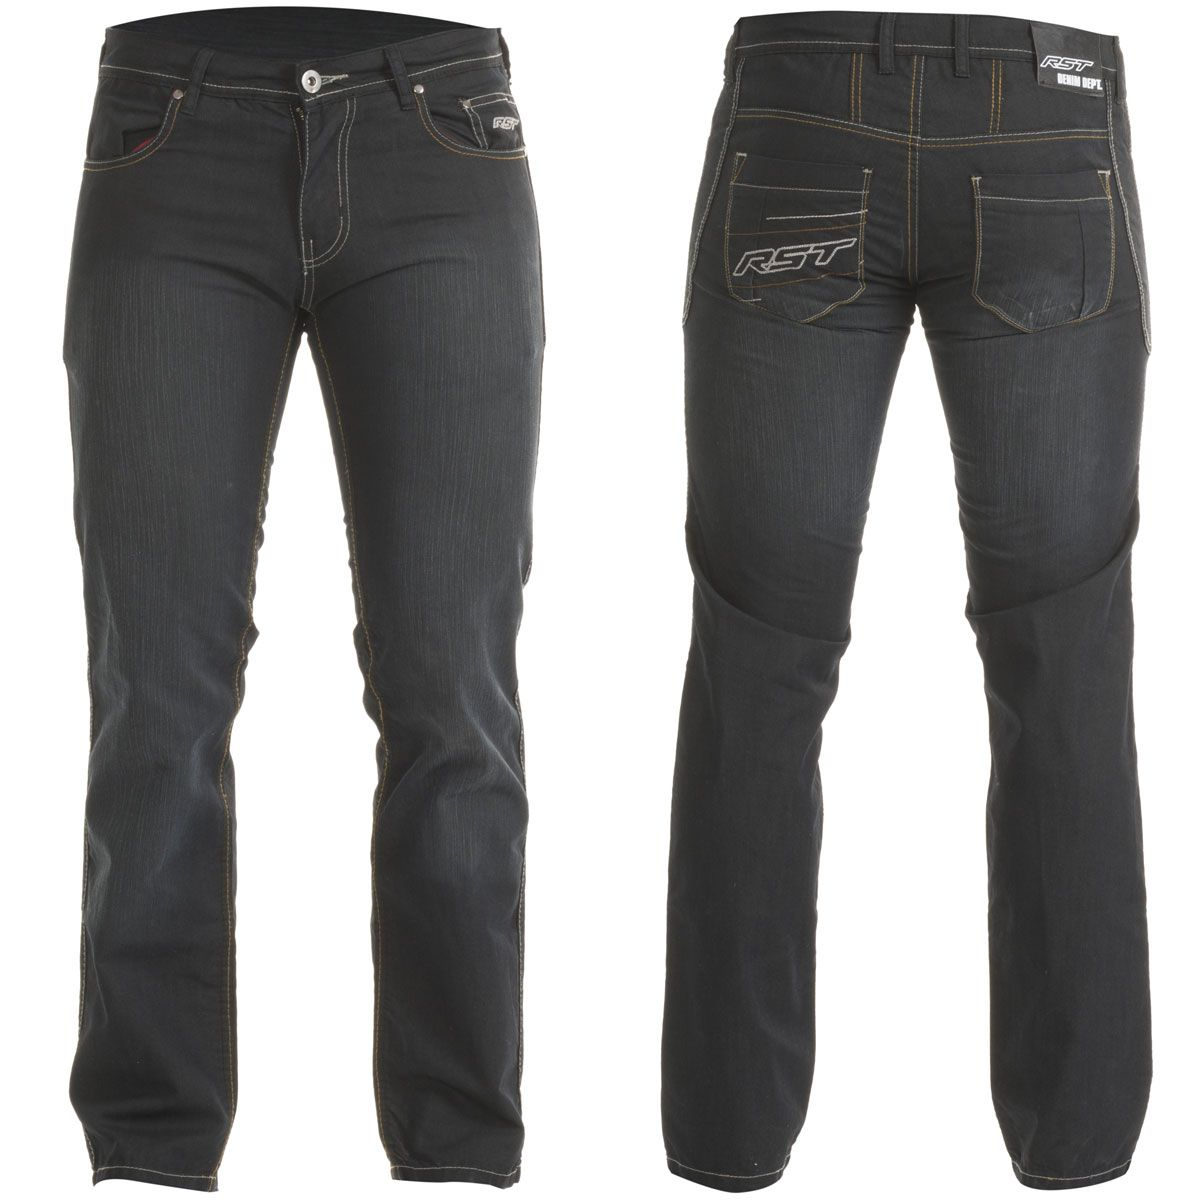 RST Denim Jeans Black